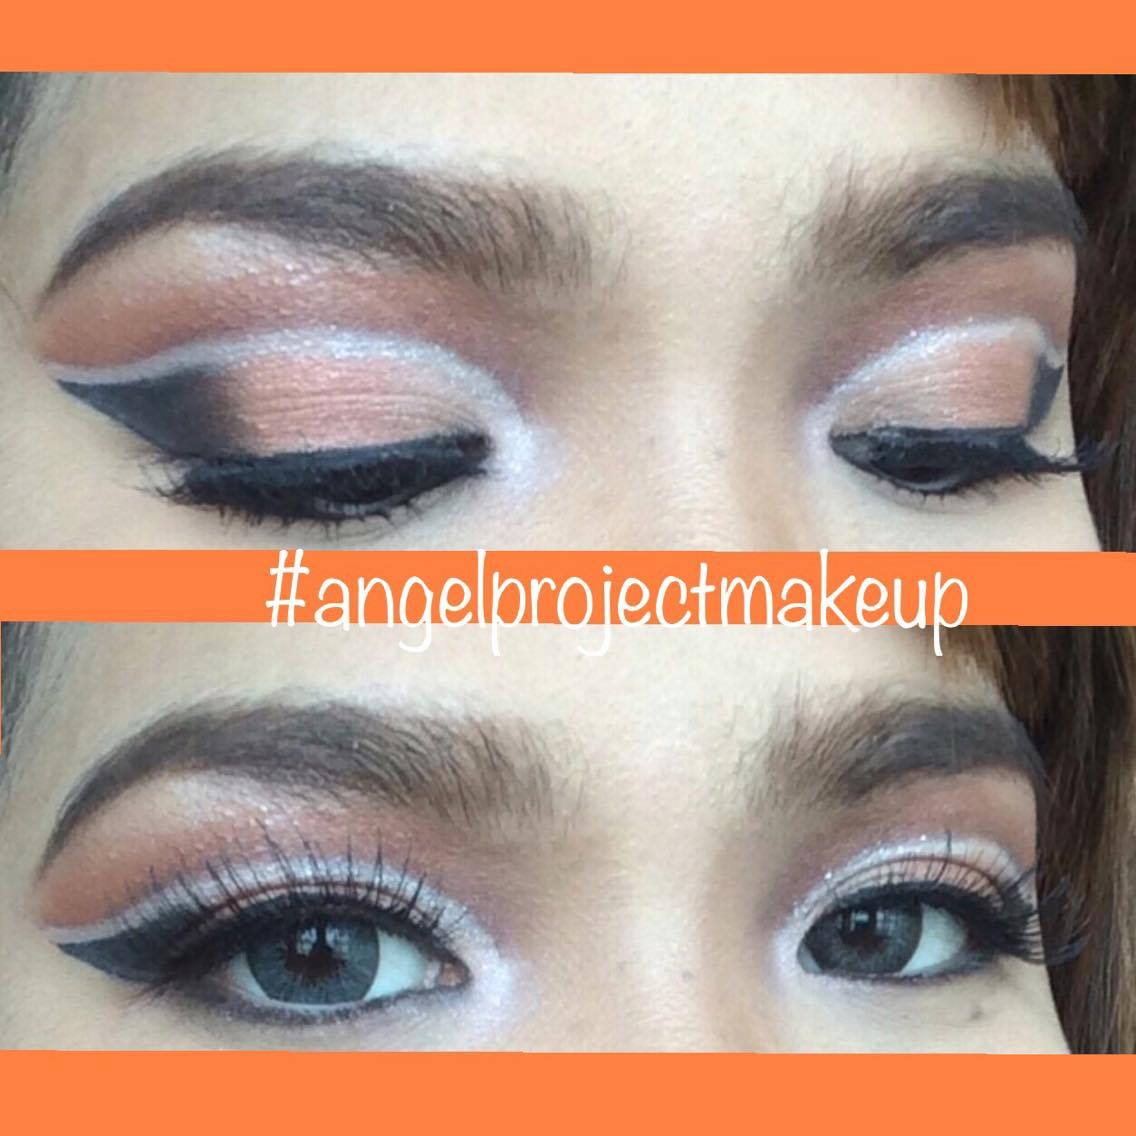 Double cutcrease, Arabic makeup look, Angel Bach artistry, Makeup Tutorial, Pinay Makeup Artist, Evening Look, Party Look, Copper Eyeshadow,